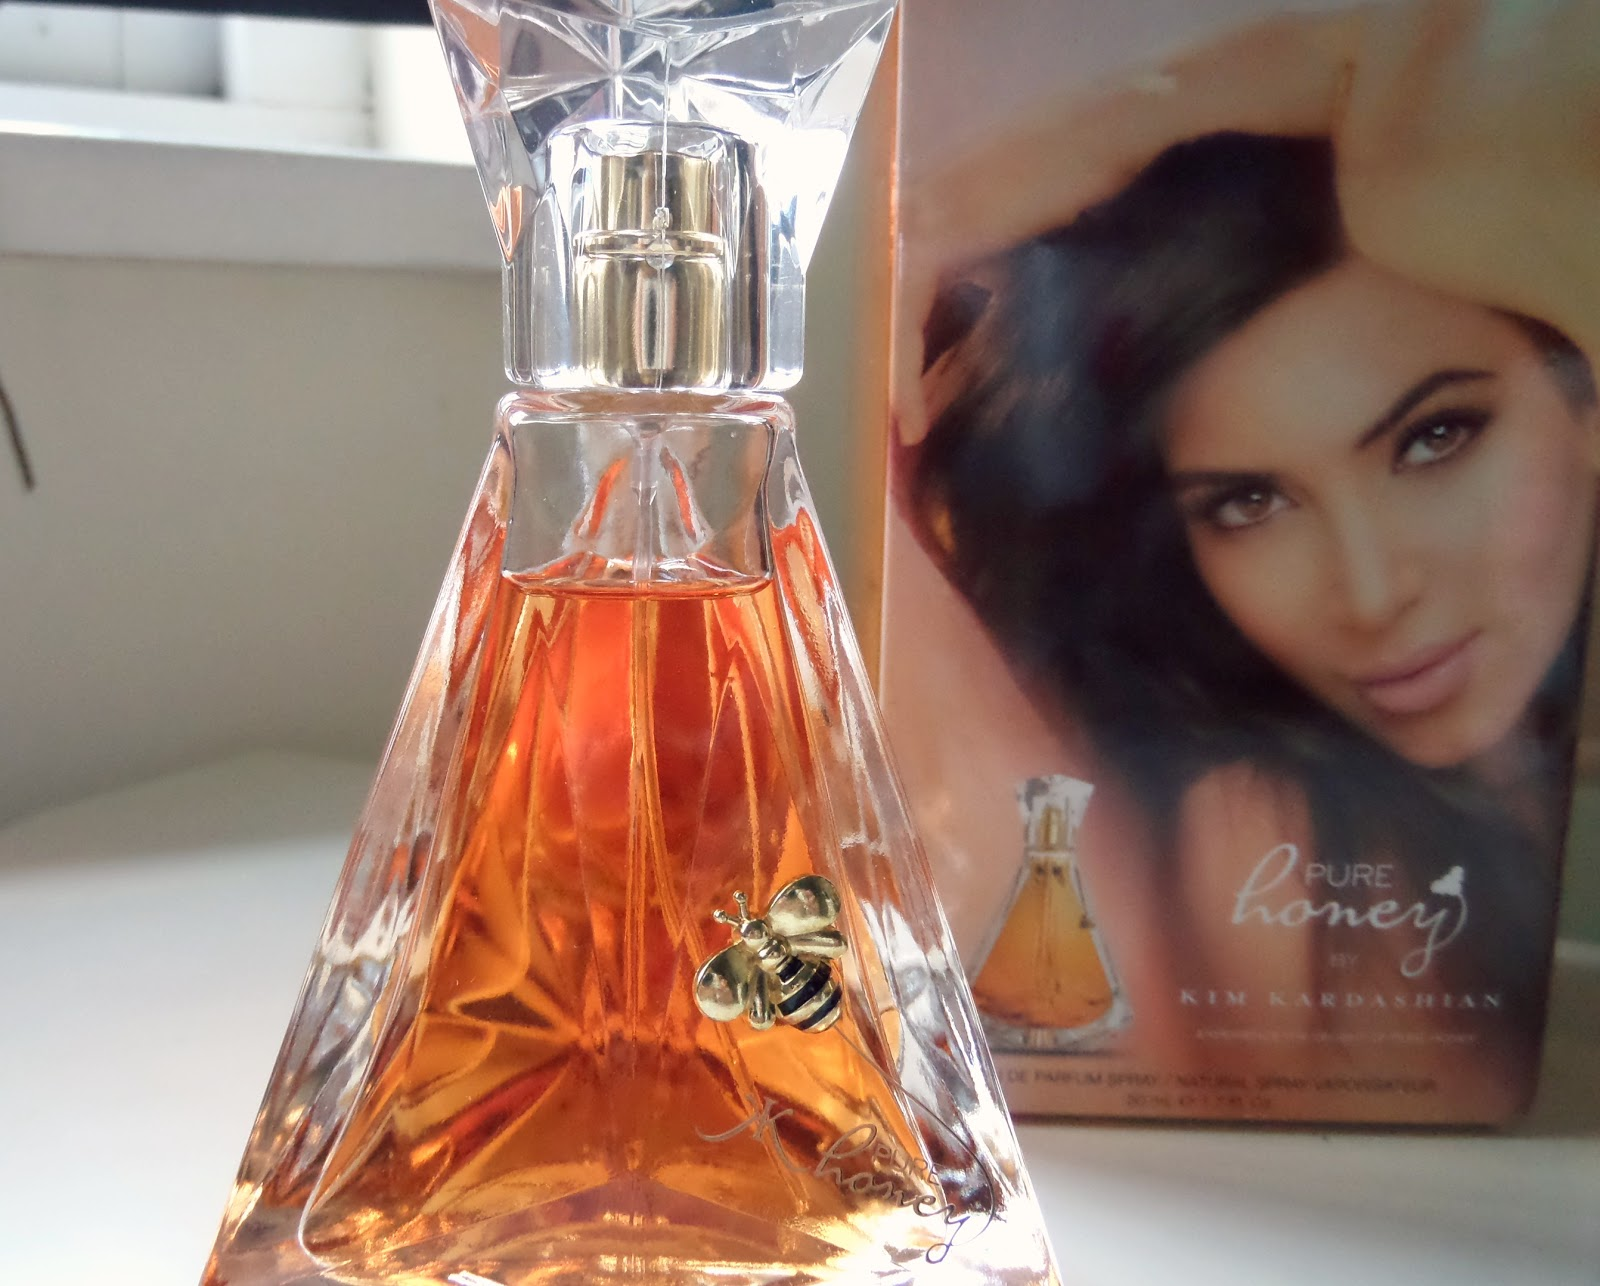 Kim Kardashian Pure Honey Bottle